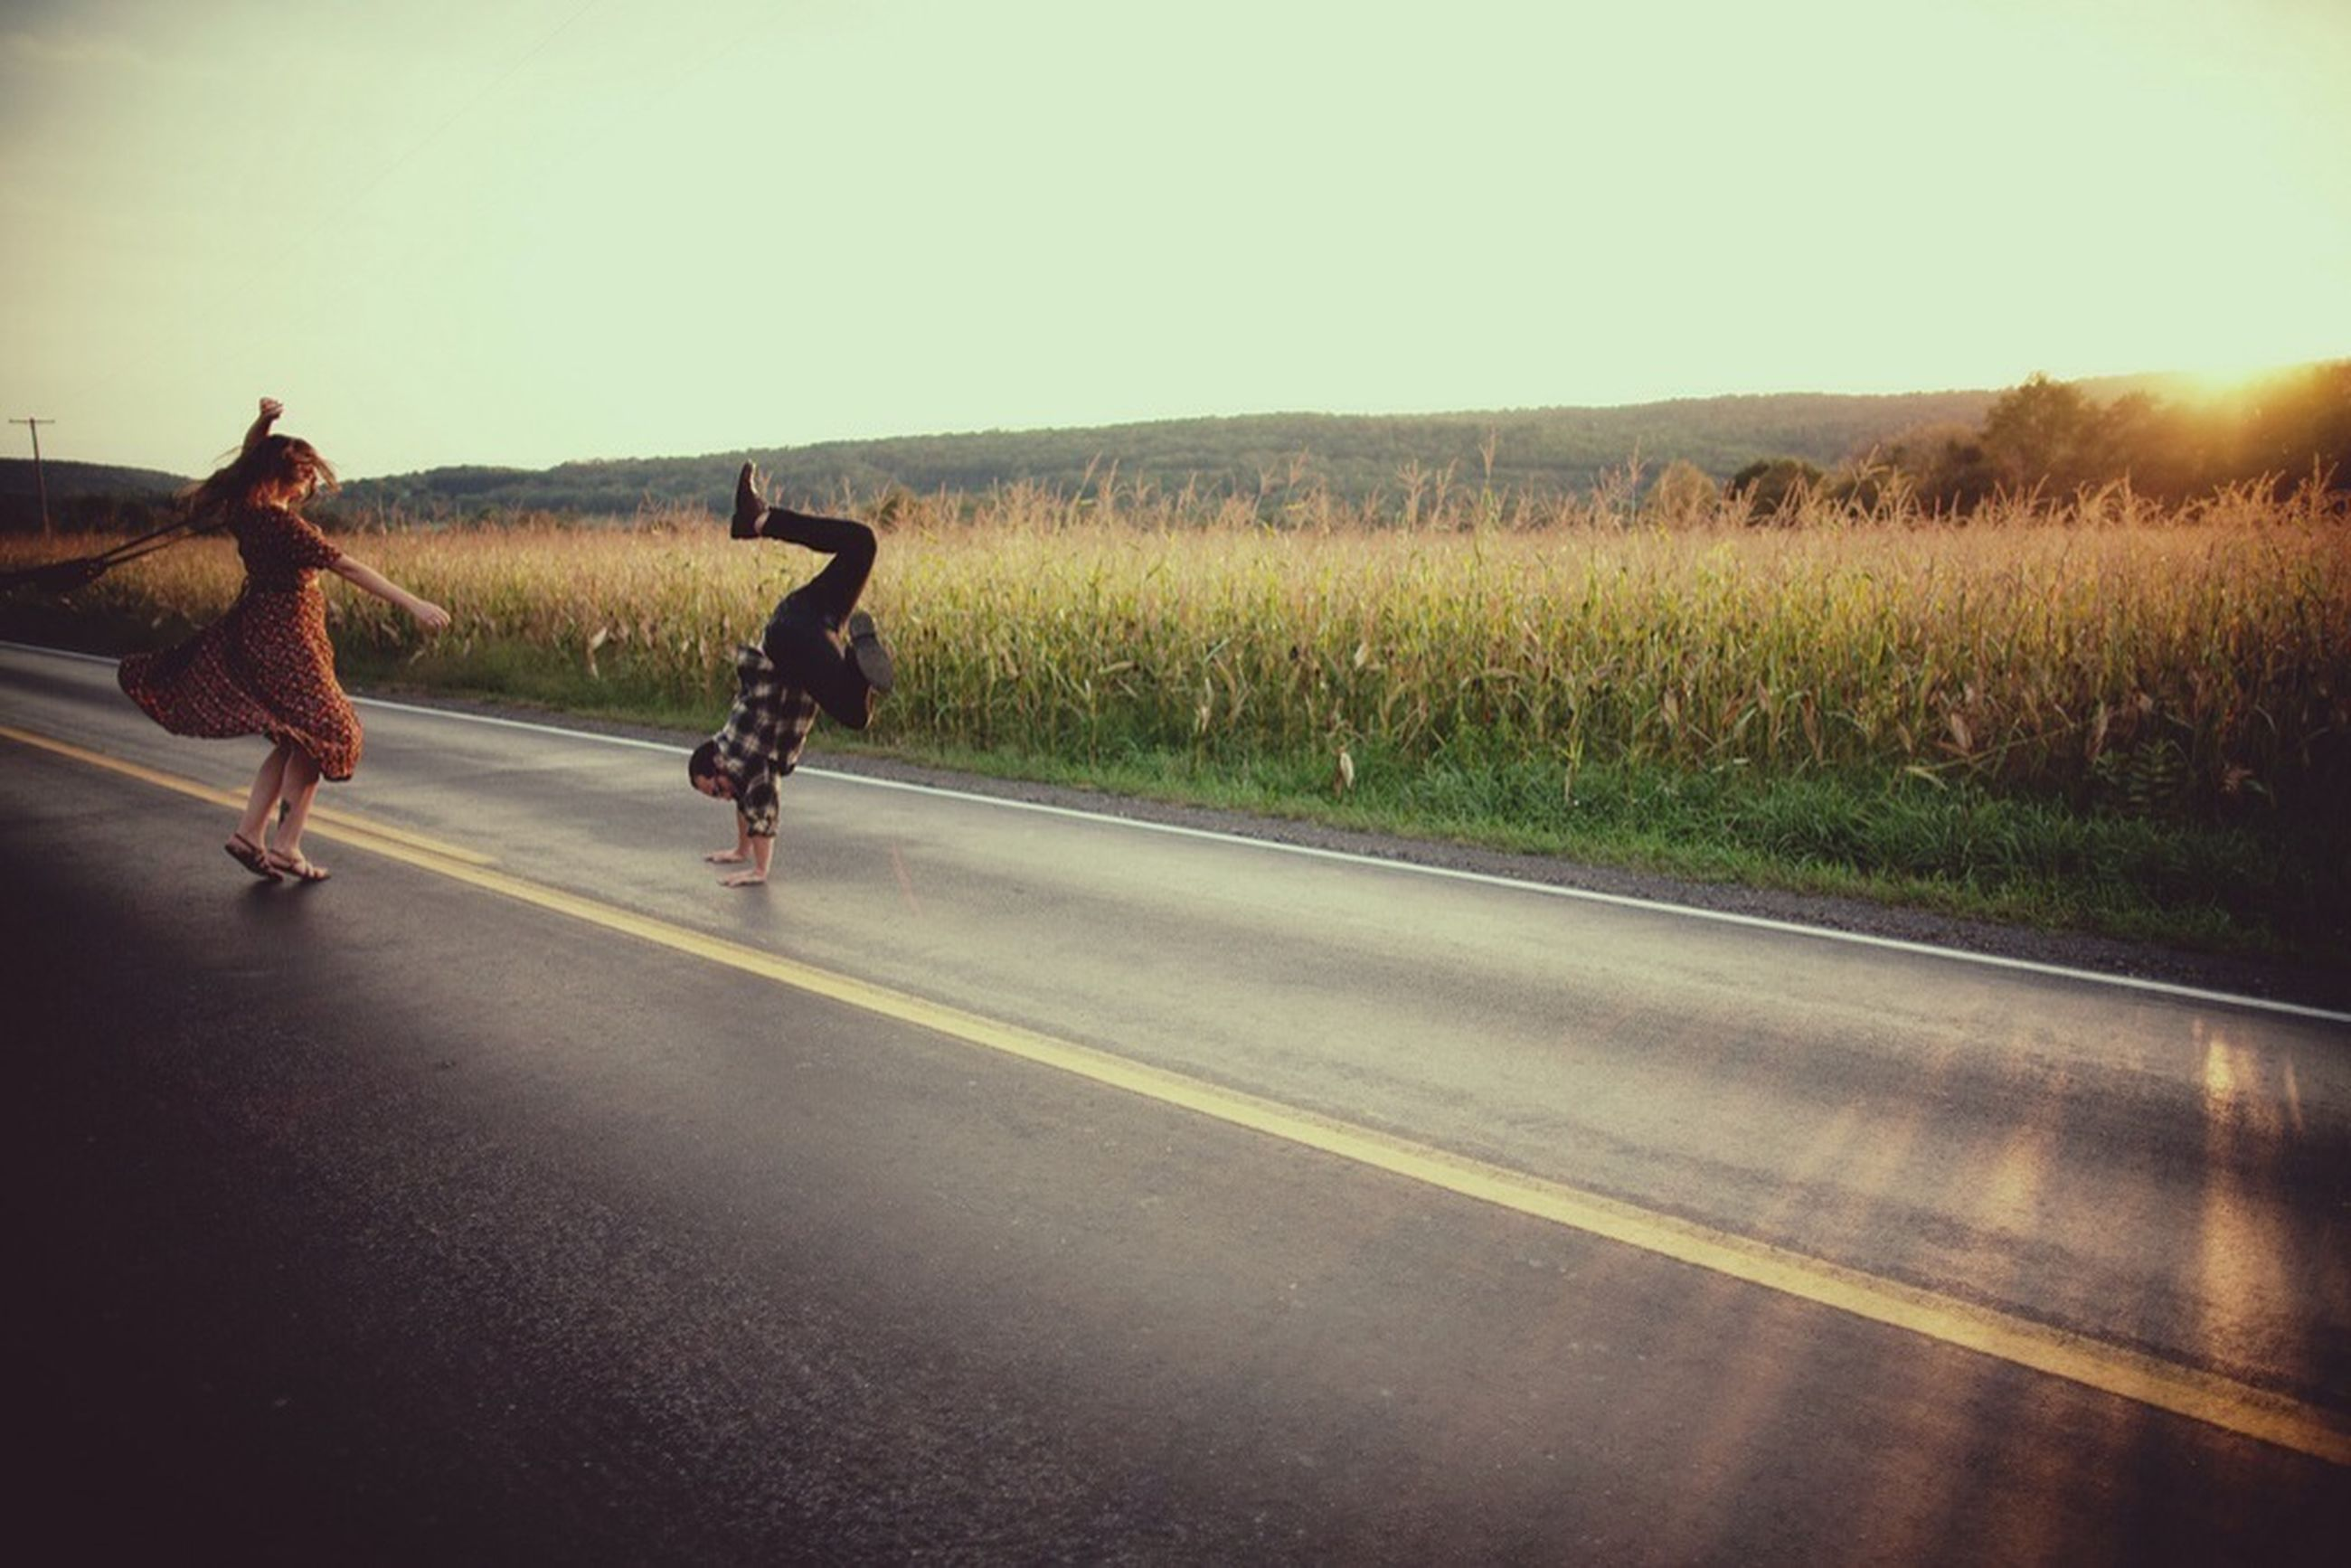 lifestyles, transportation, bicycle, full length, road, leisure activity, men, riding, clear sky, field, grass, land vehicle, landscape, walking, street, rear view, cycling, sunlight